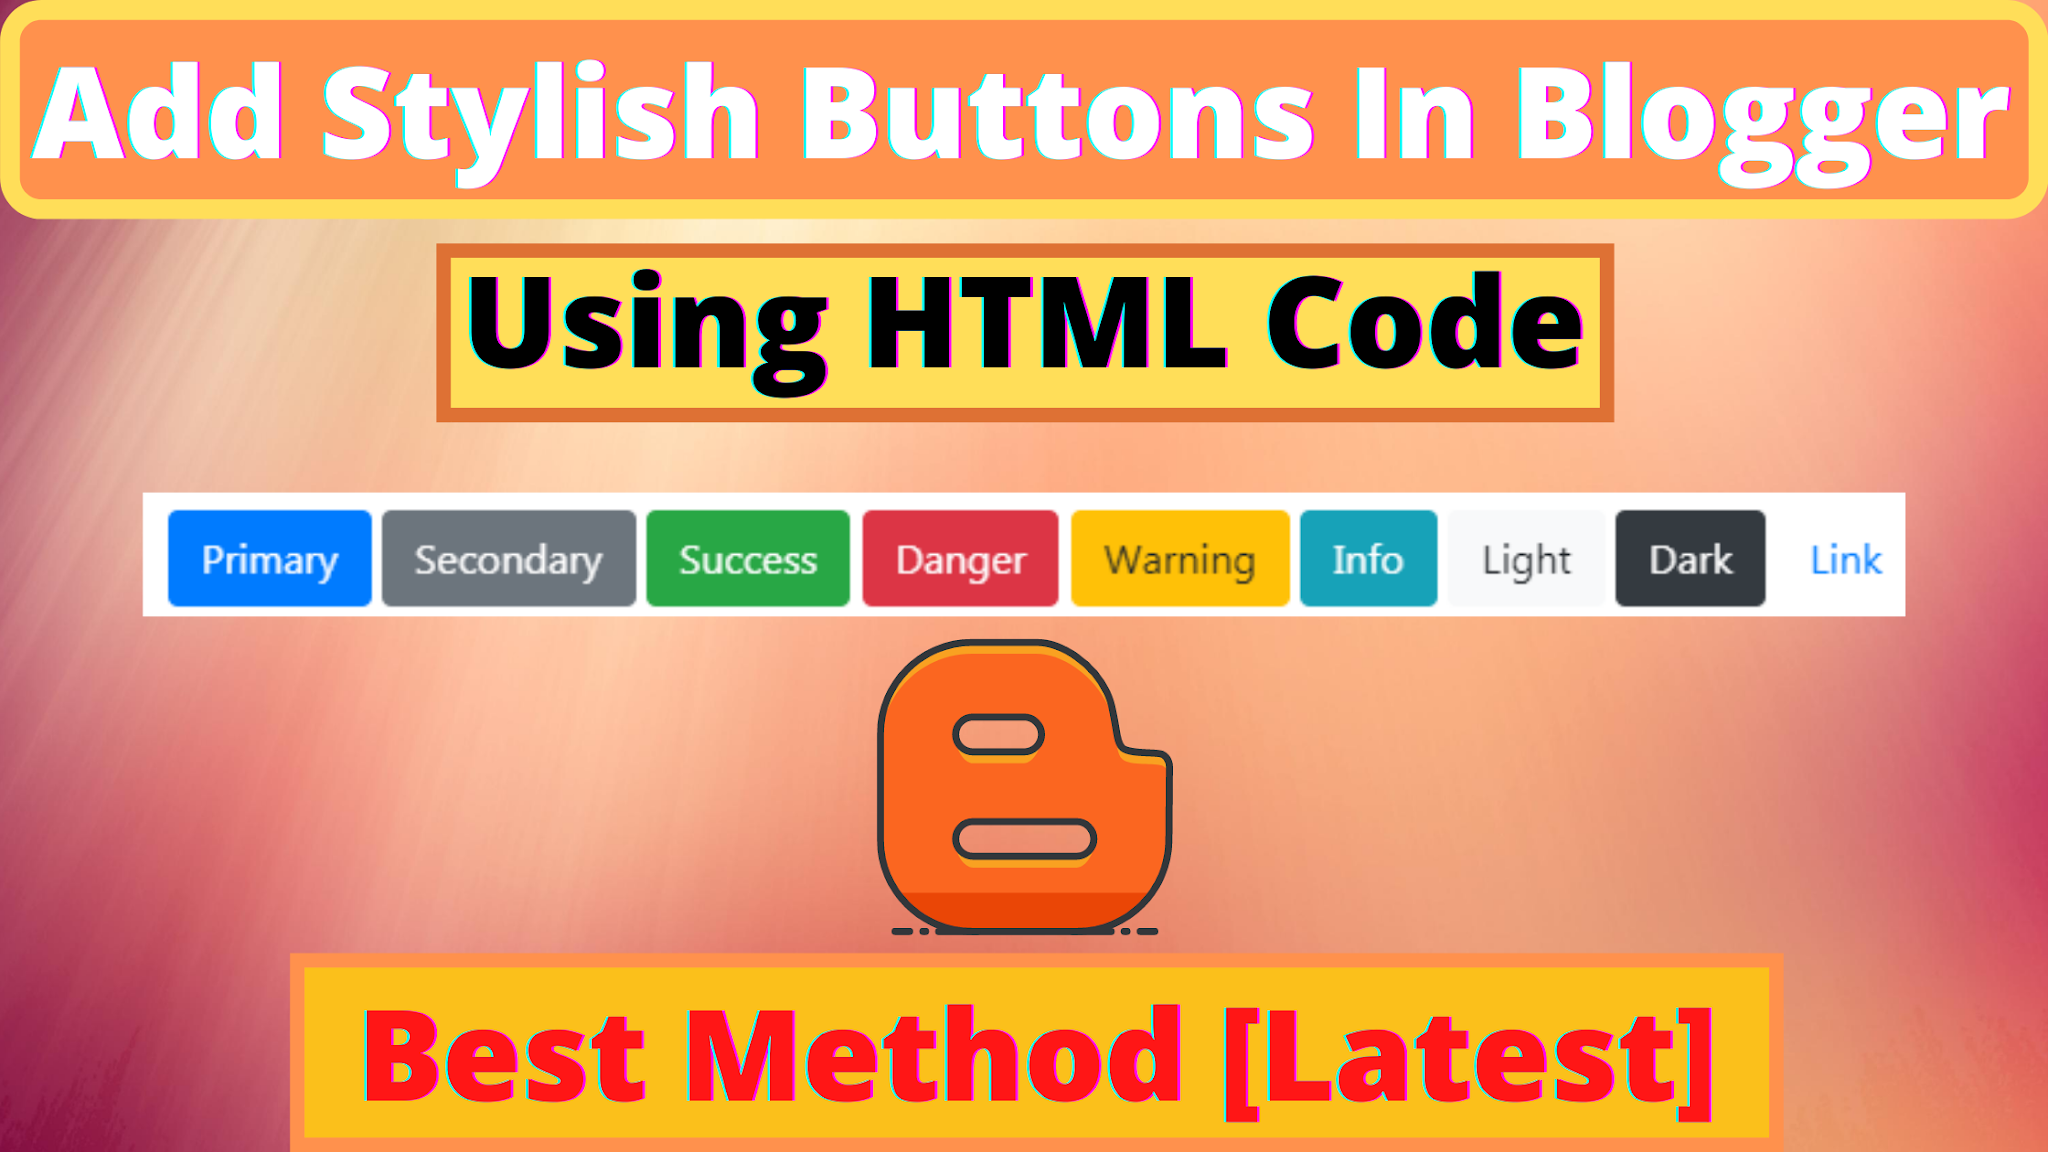 [Best Method] How To Add A Button In Blogger Post Using HTML Code [2020]